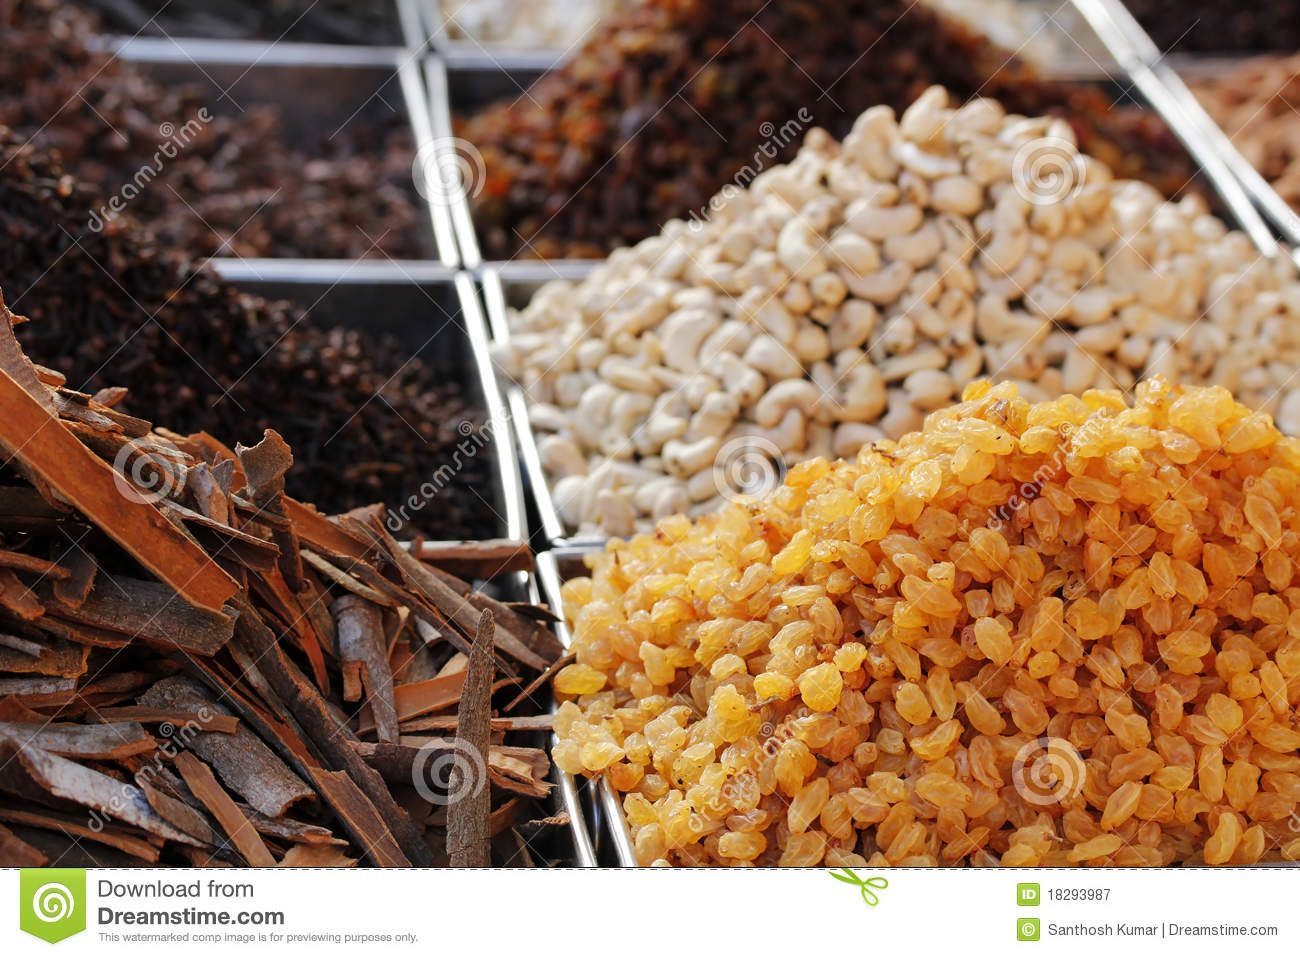 Dry fruits dry fruits business in india - Dried fruit business ...